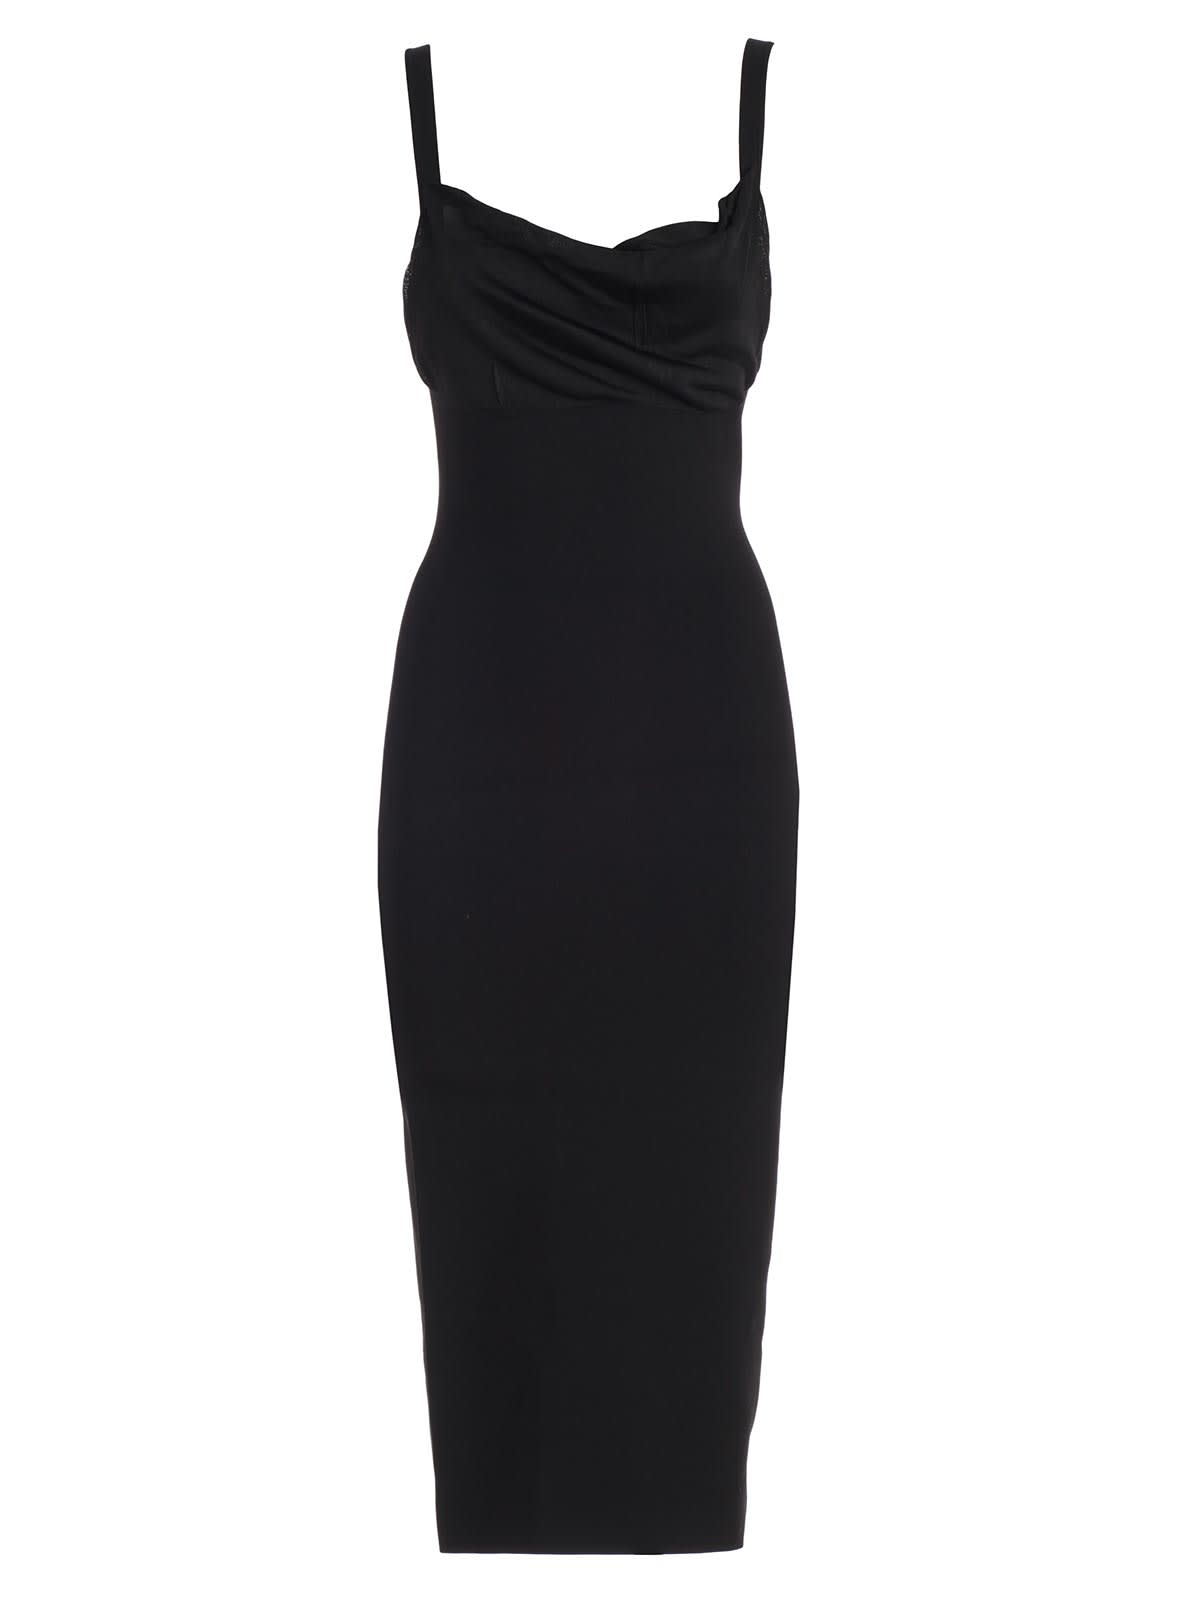 Buy Theory Dress Thin Strap online, shop Theory with free shipping